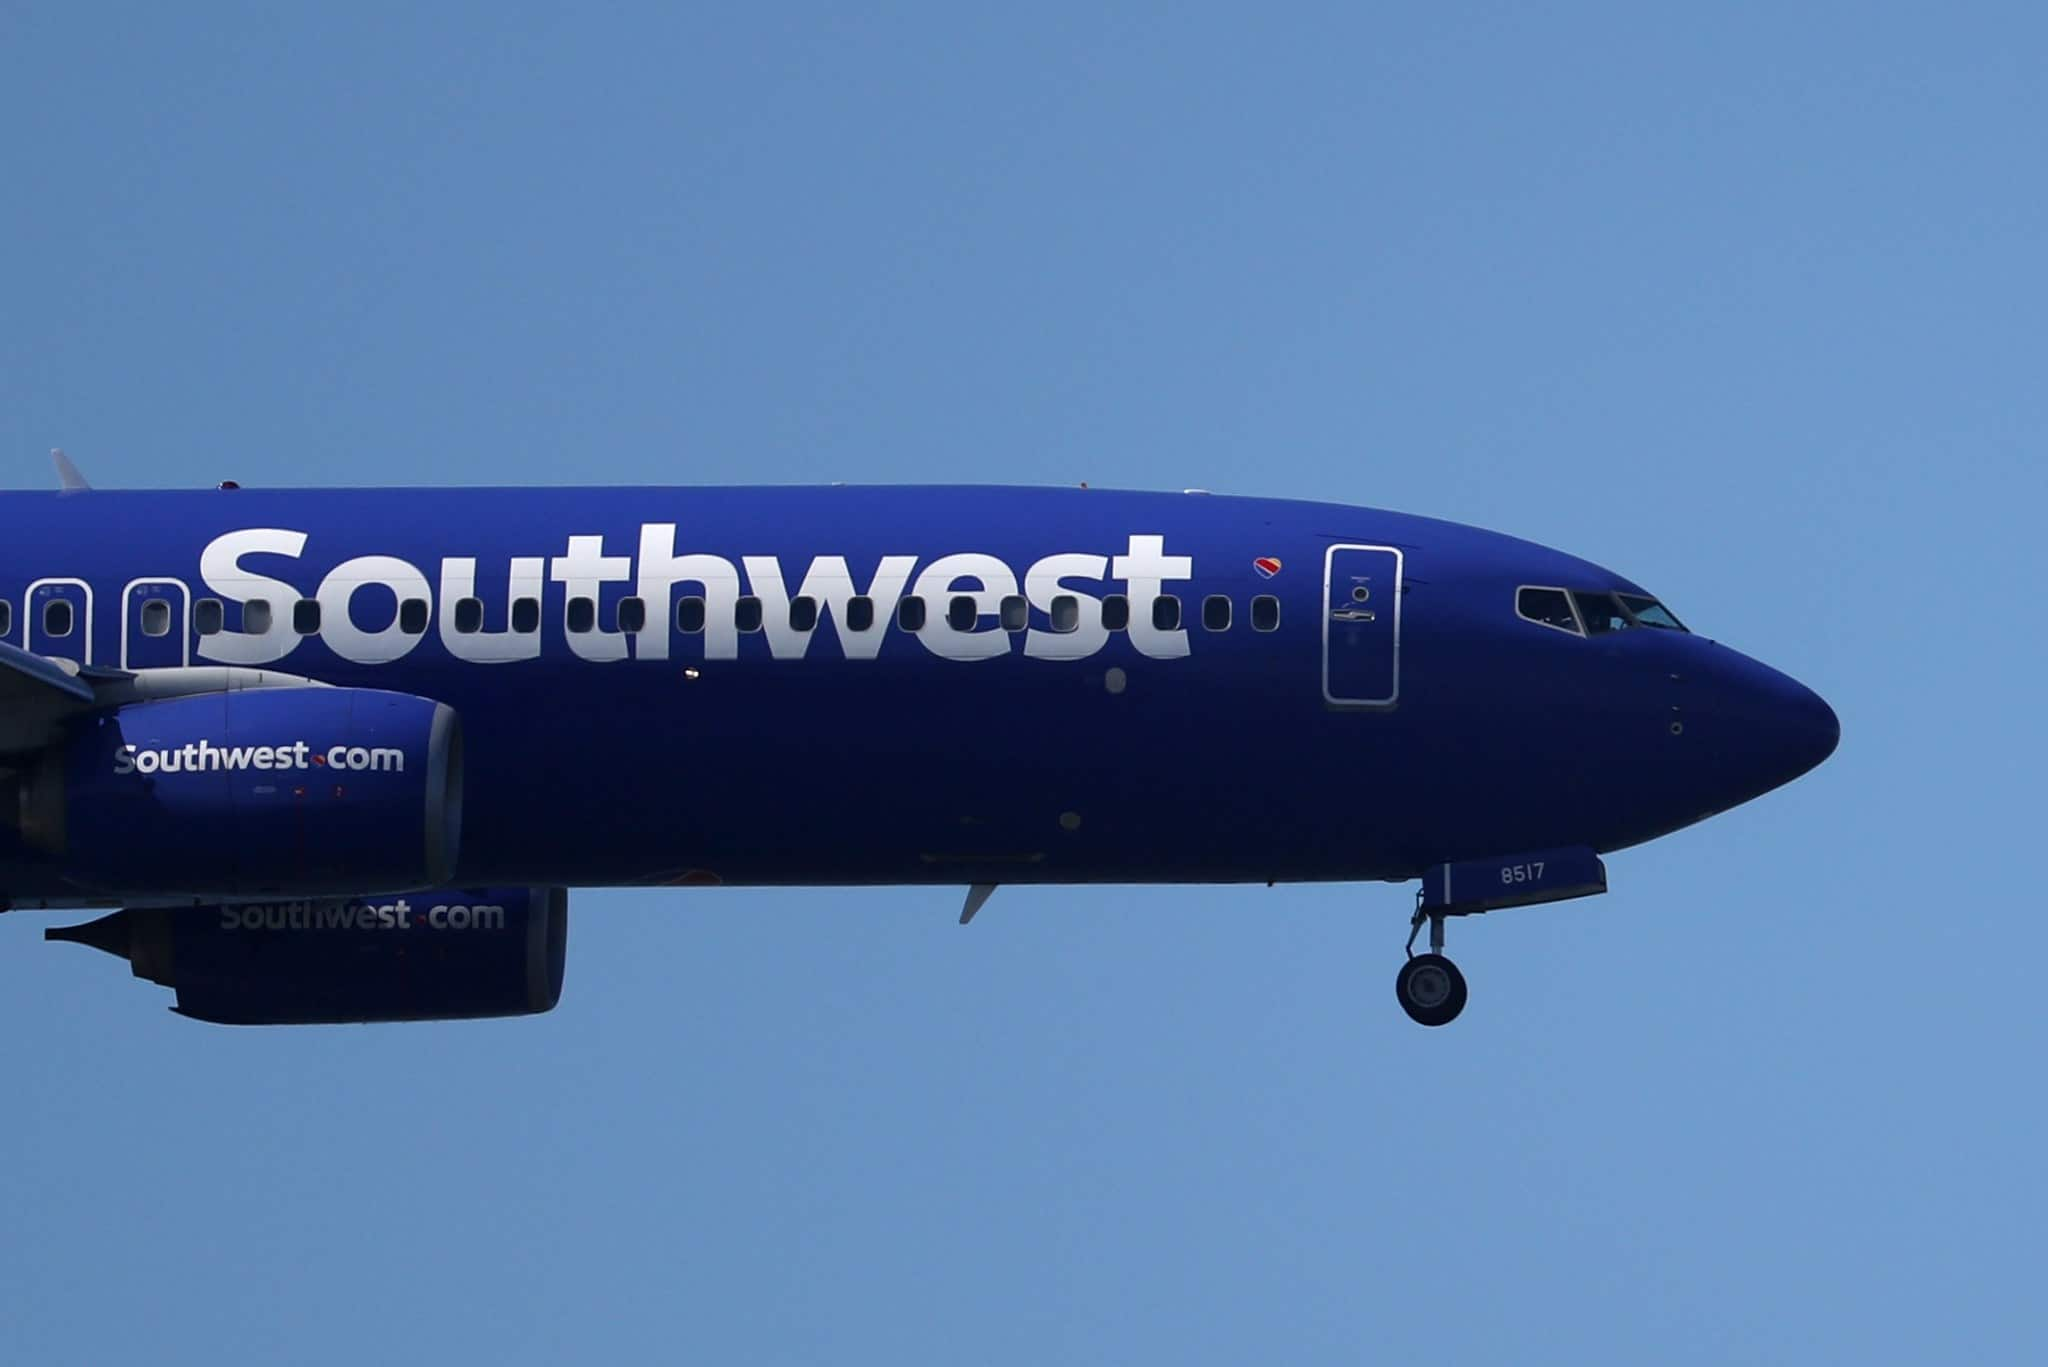 YMMV: Free Southwest A-List Status through 6/30/2020 for Chase Card members